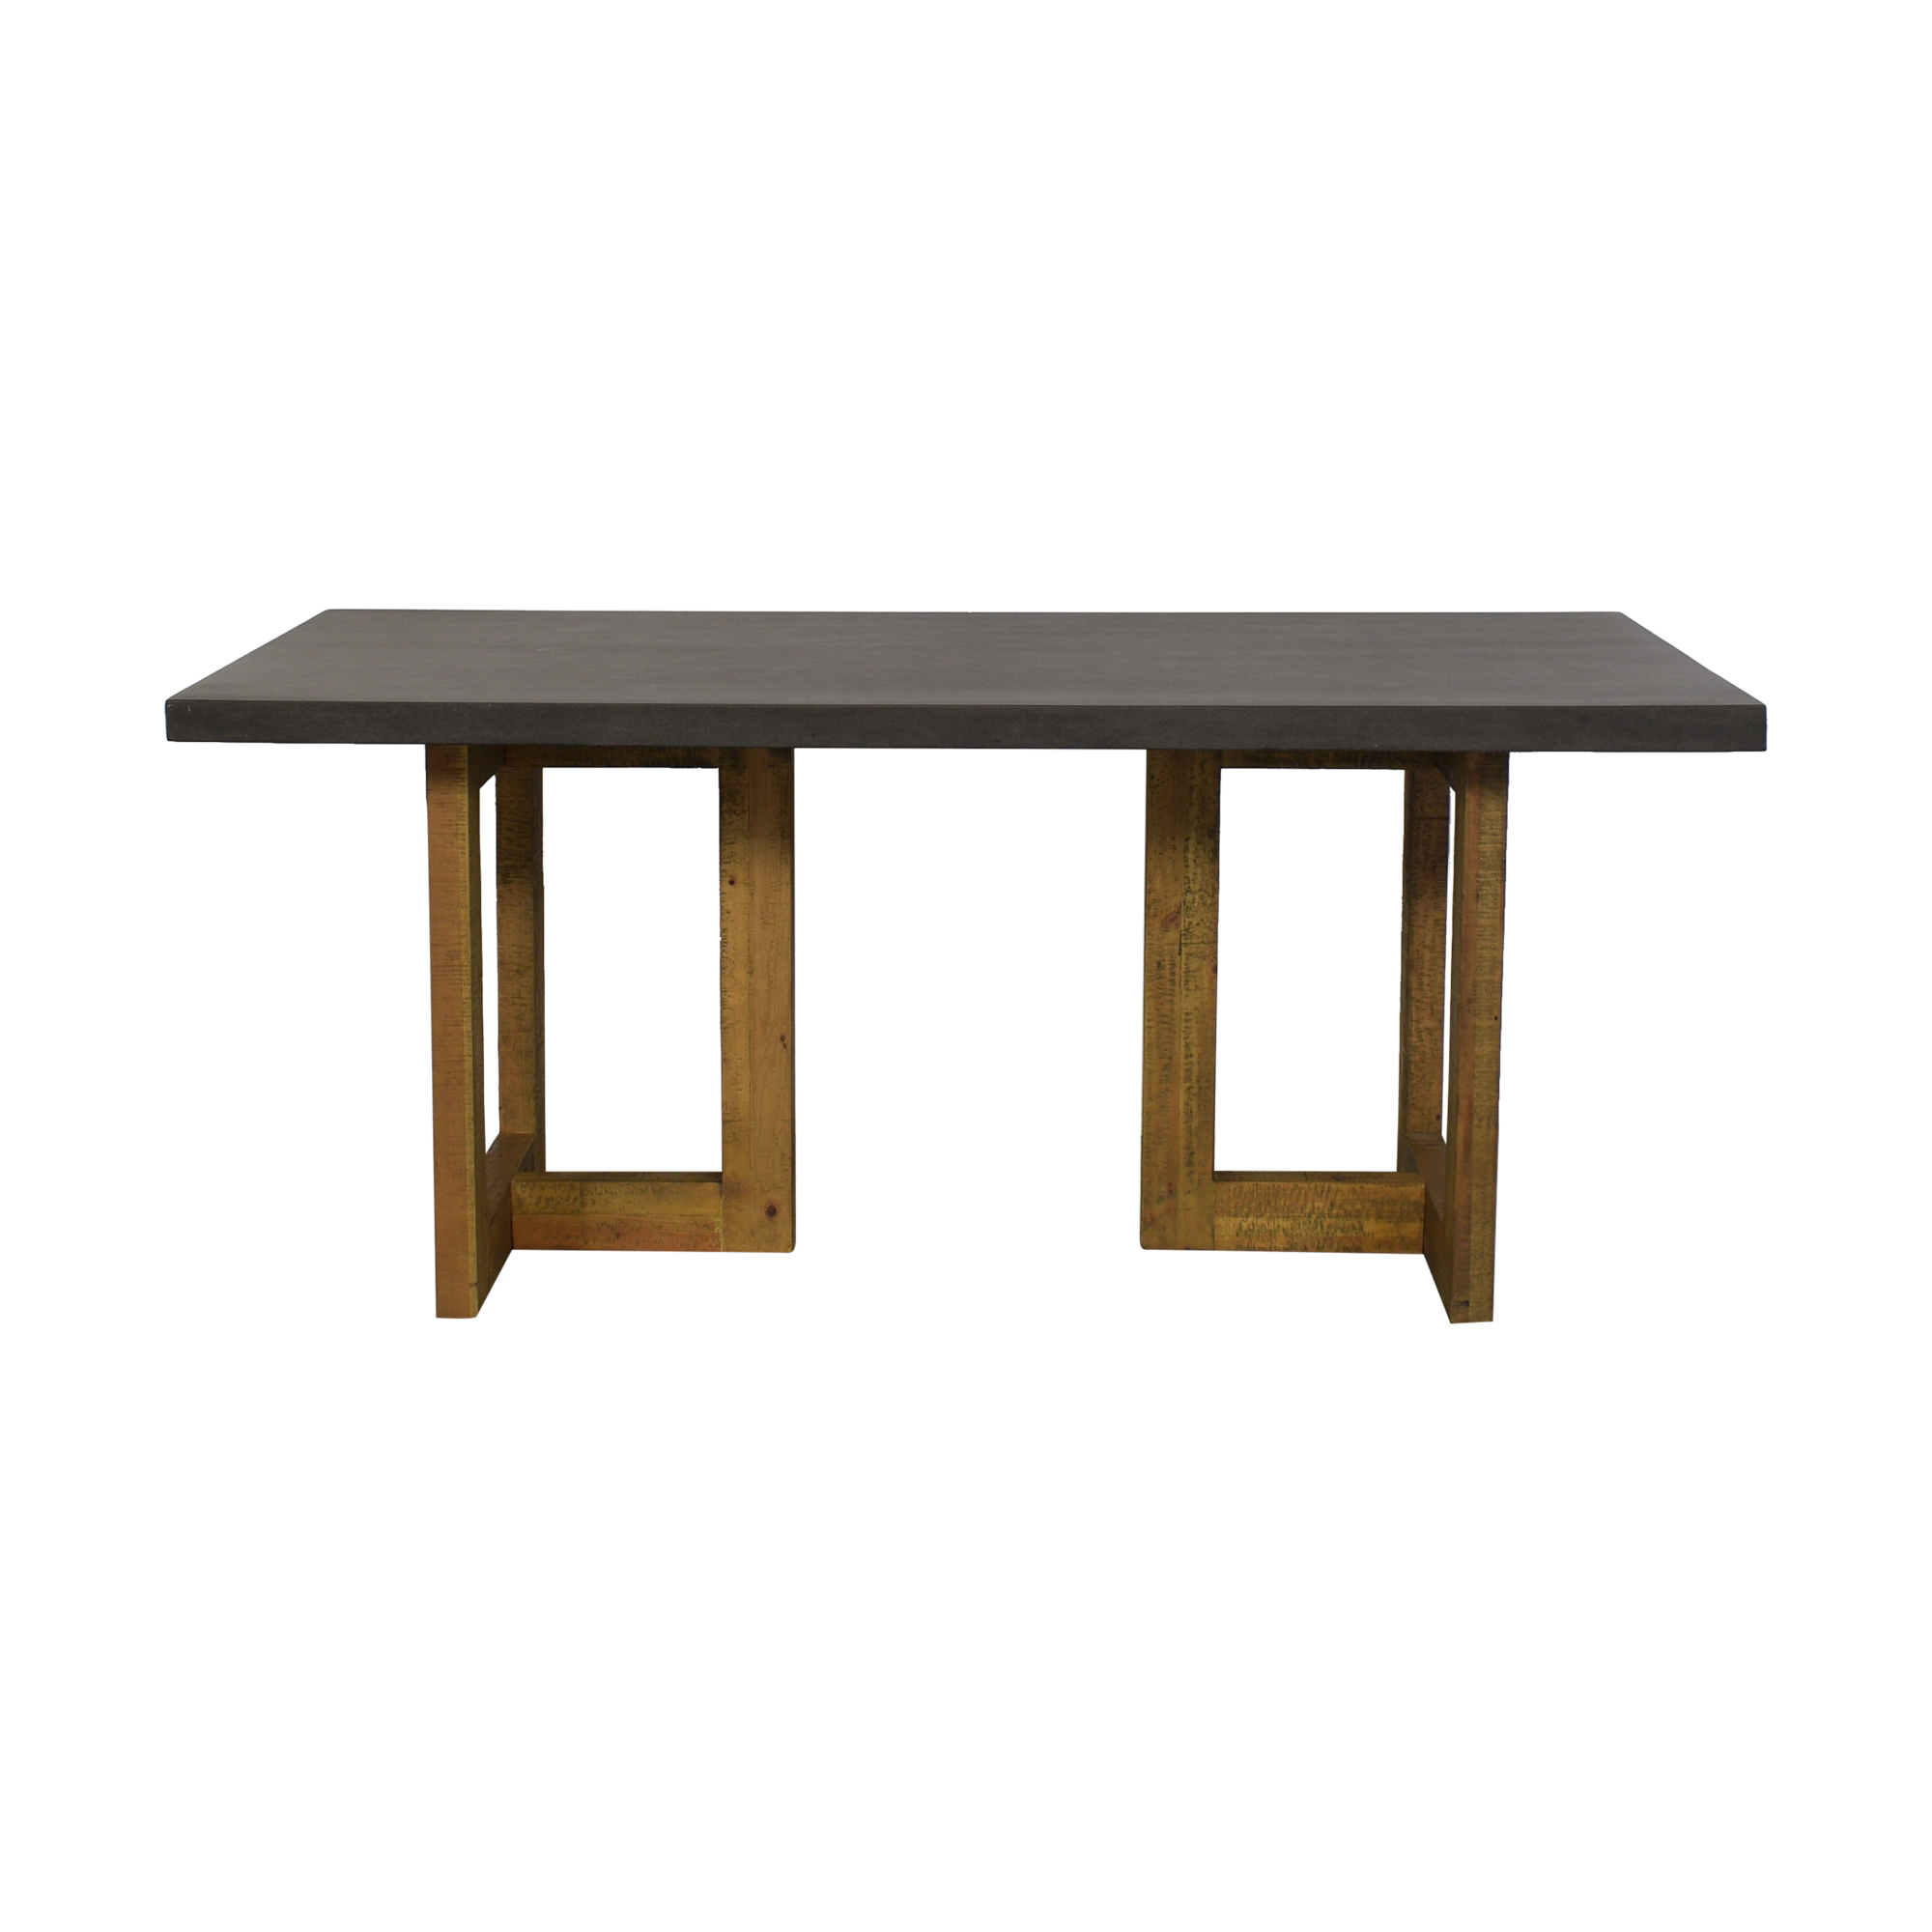 West Elm West Elm Ashton Lava Top Dining Table discount